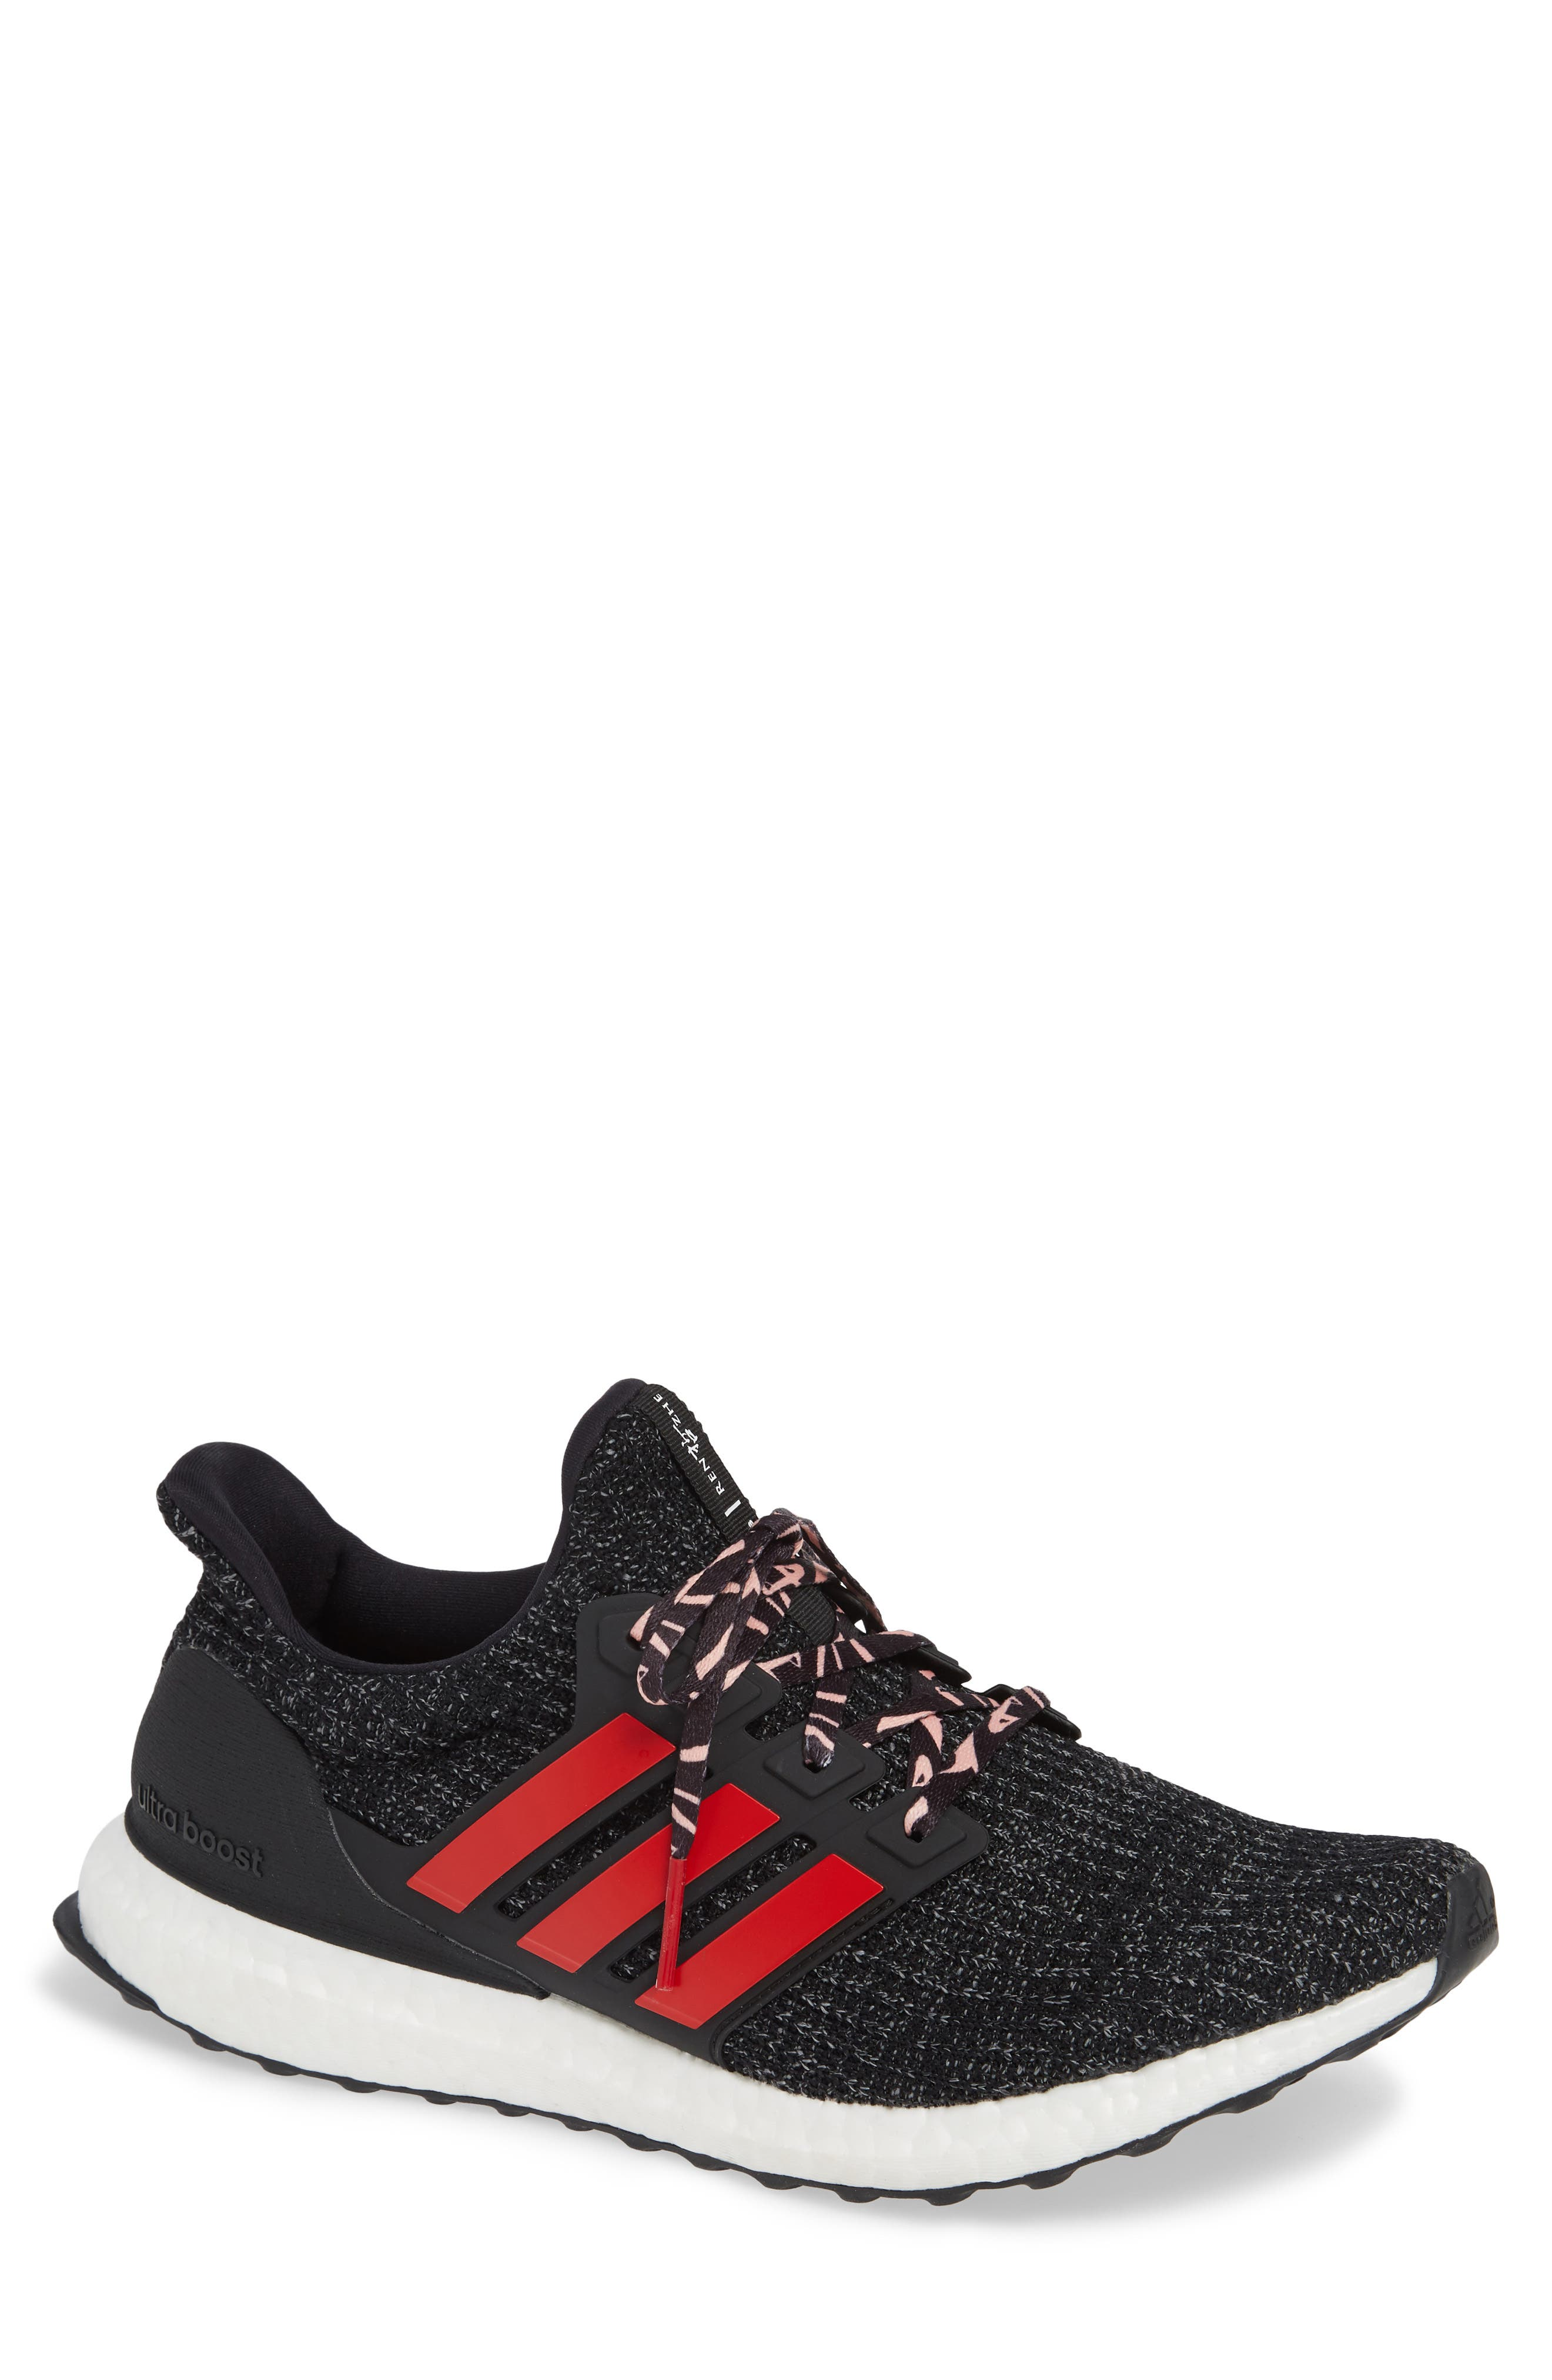 ADIDAS, 'UltraBoost' Running Shoe, Main thumbnail 1, color, CORE BLACK/ SCARLET/ GREY